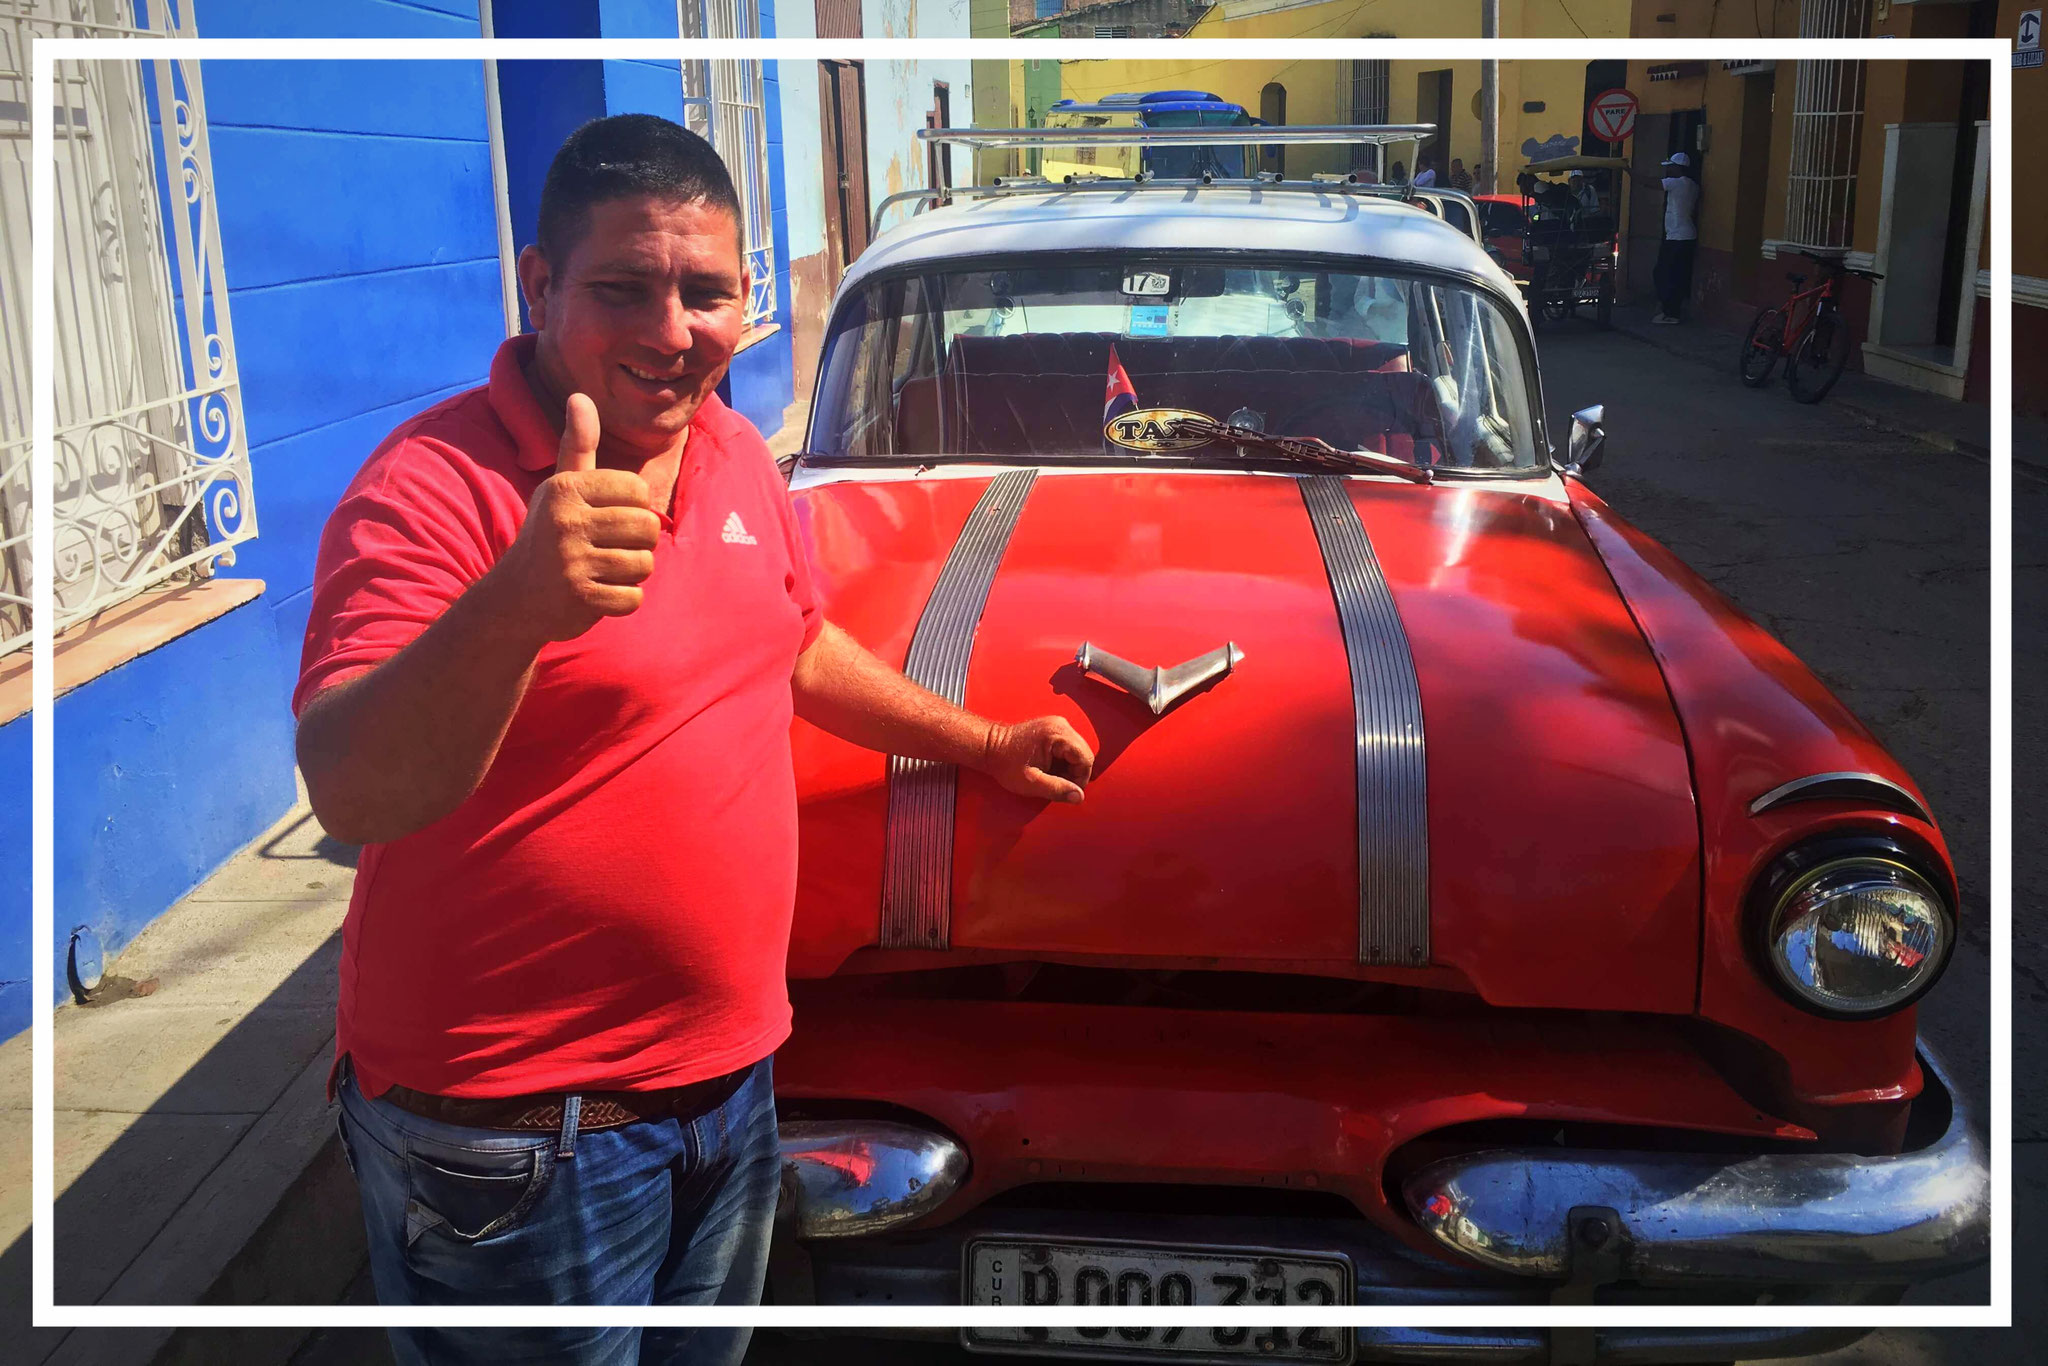 Nelson - proud taxi driver from Cuba